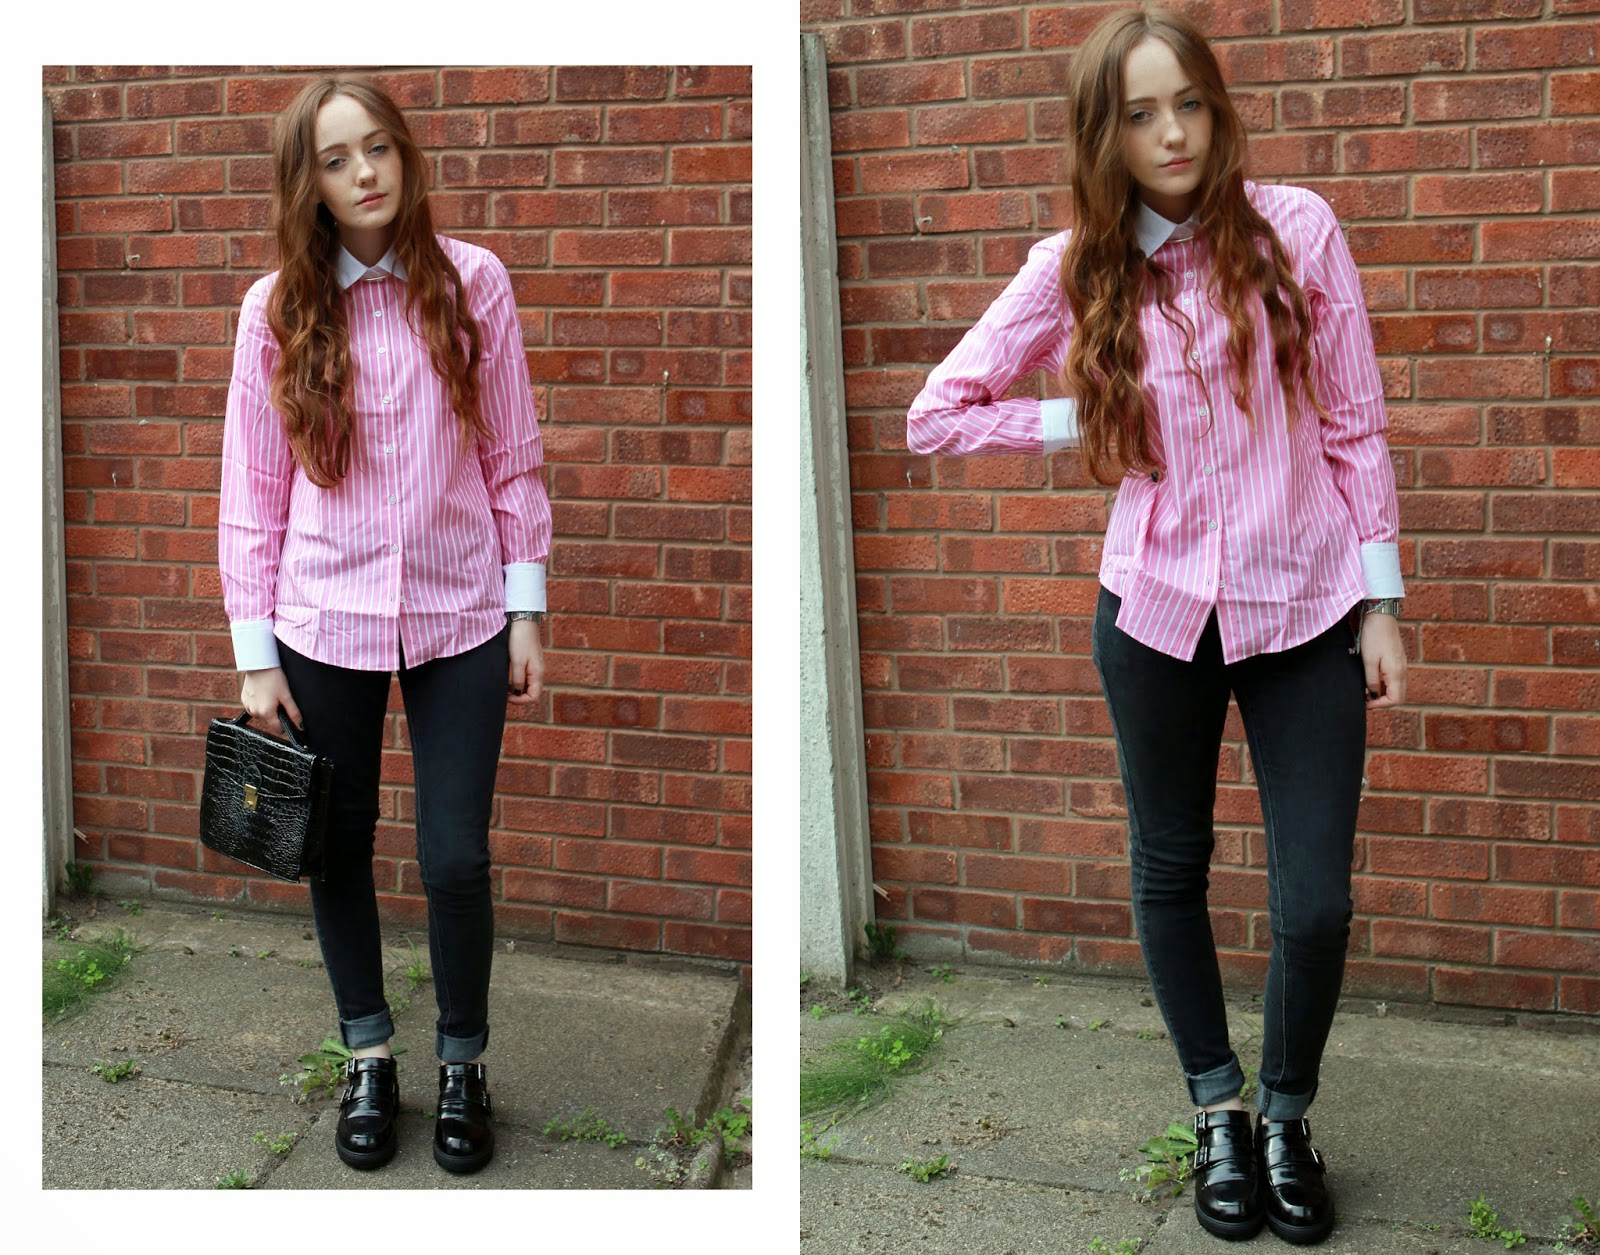 hawes and curtis pink pinstripe shirt with primark black jeans, monk shoes and satchel